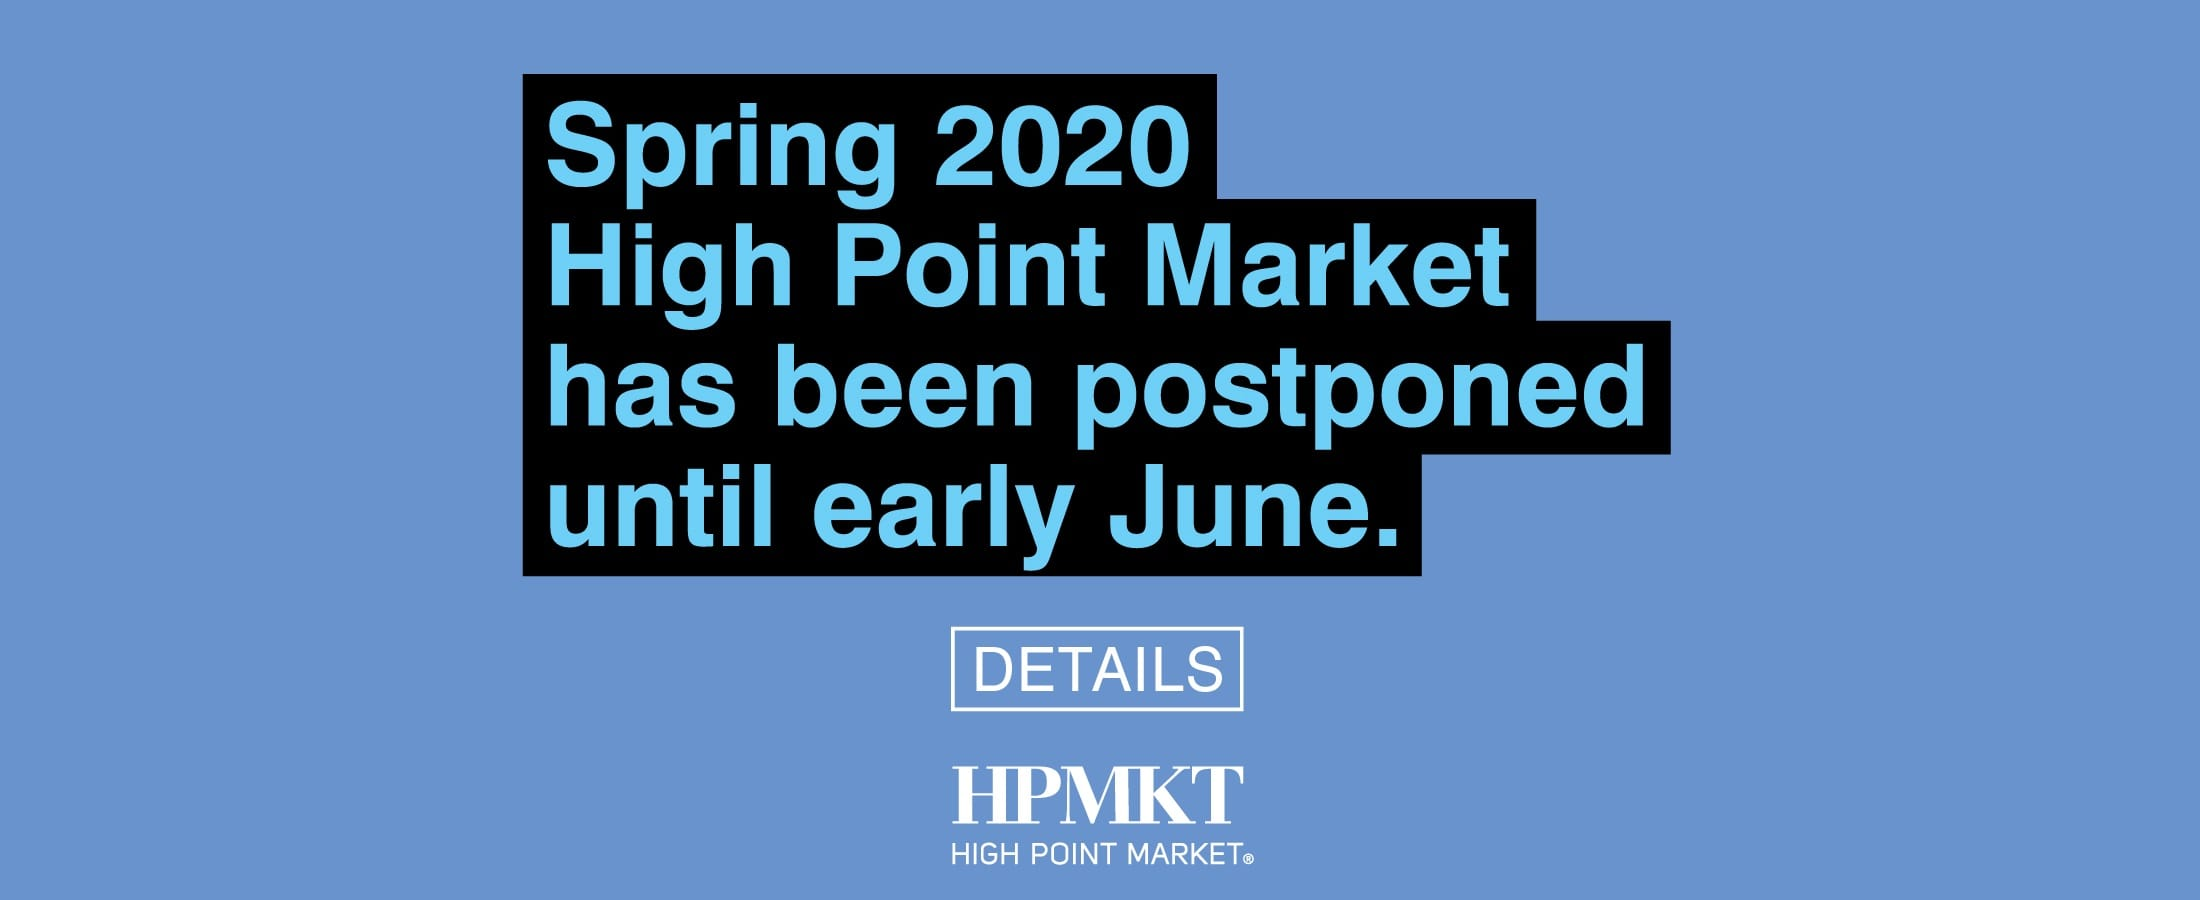 Spring 2020 High Point Market Postponed: The furniture industry is all in this together